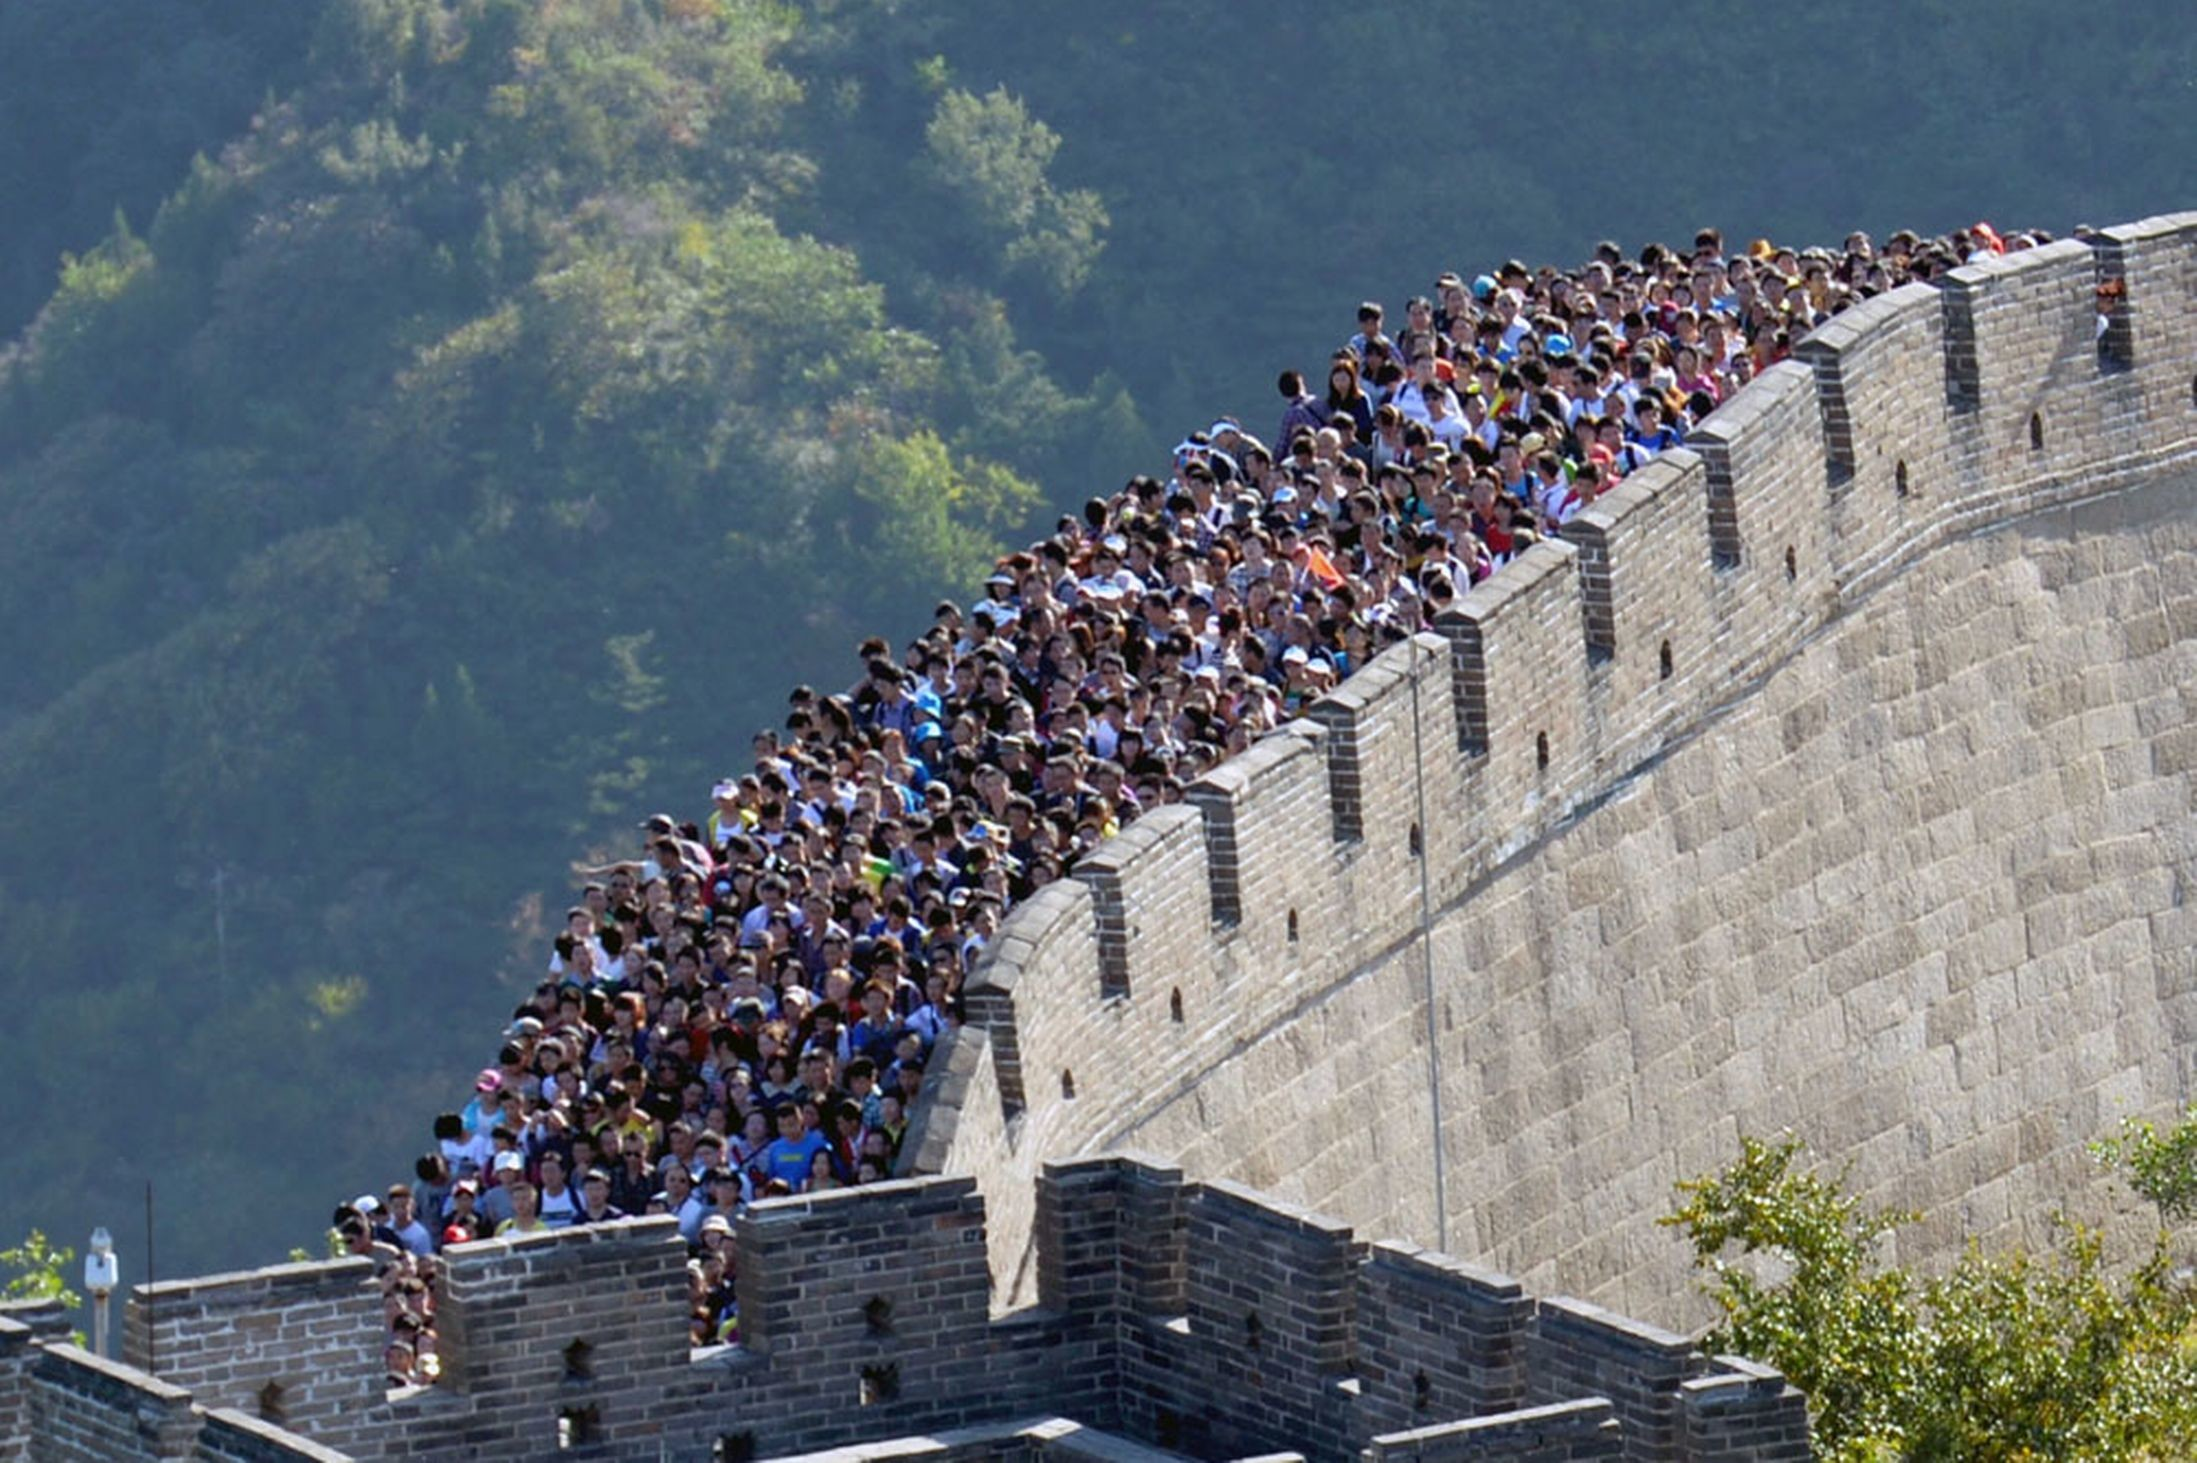 The Great Wall of China Wallpaper 51 images 2197x1463